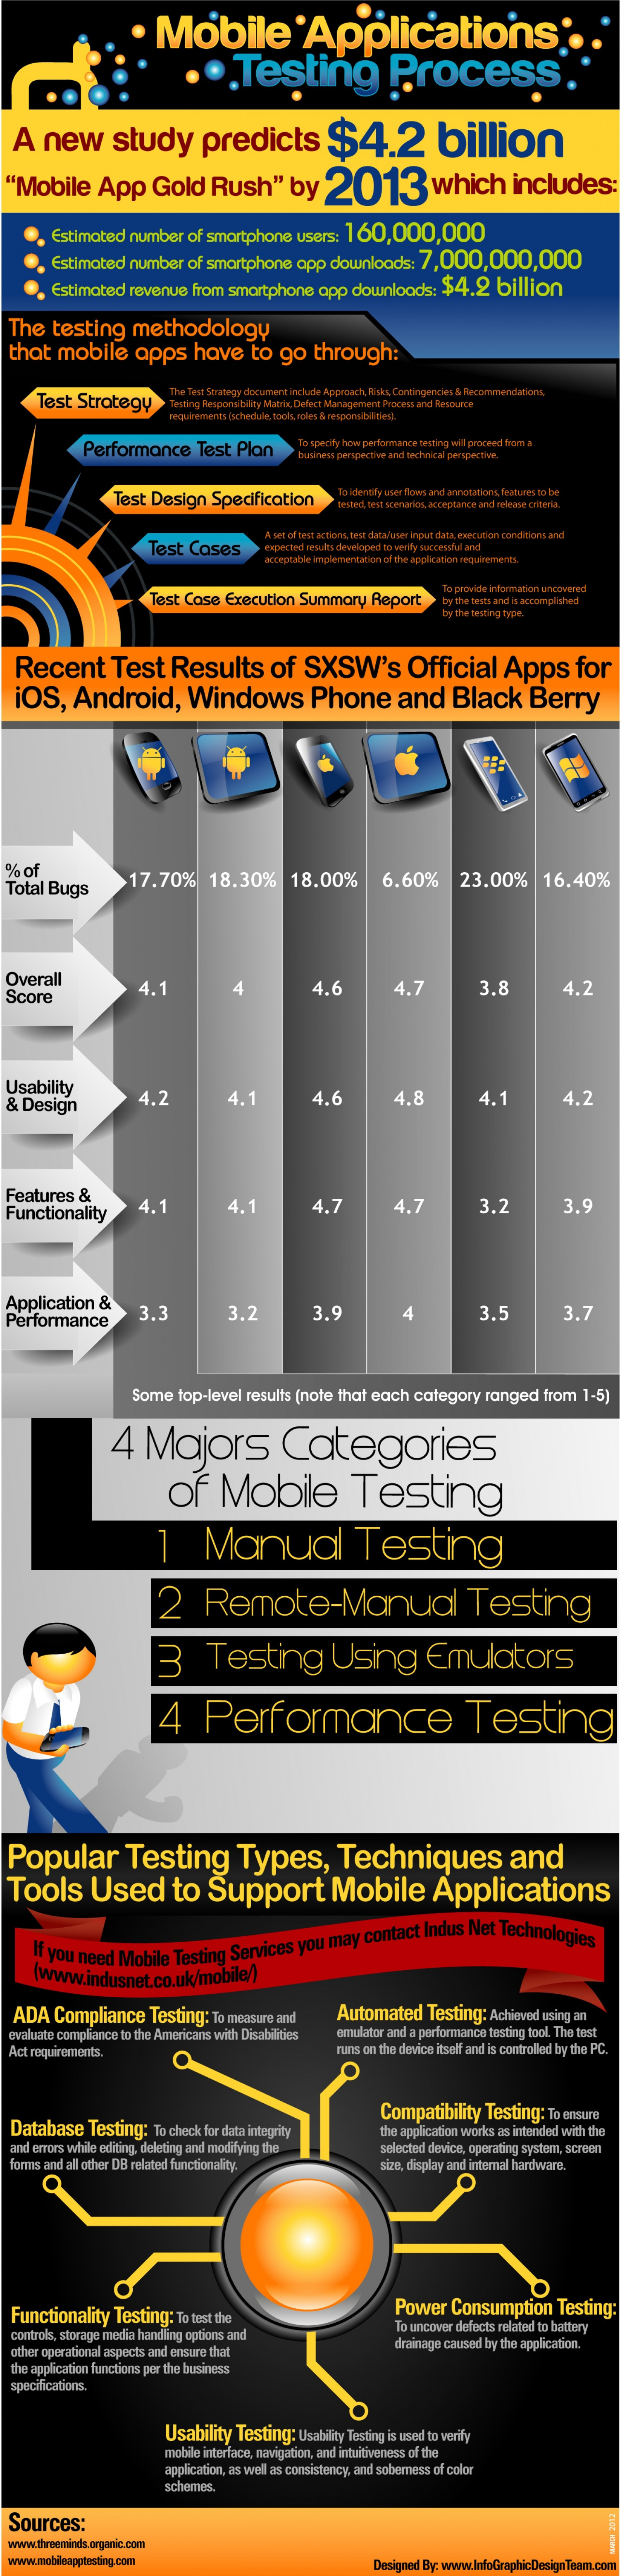 Mobile Application Testing Process Infographic